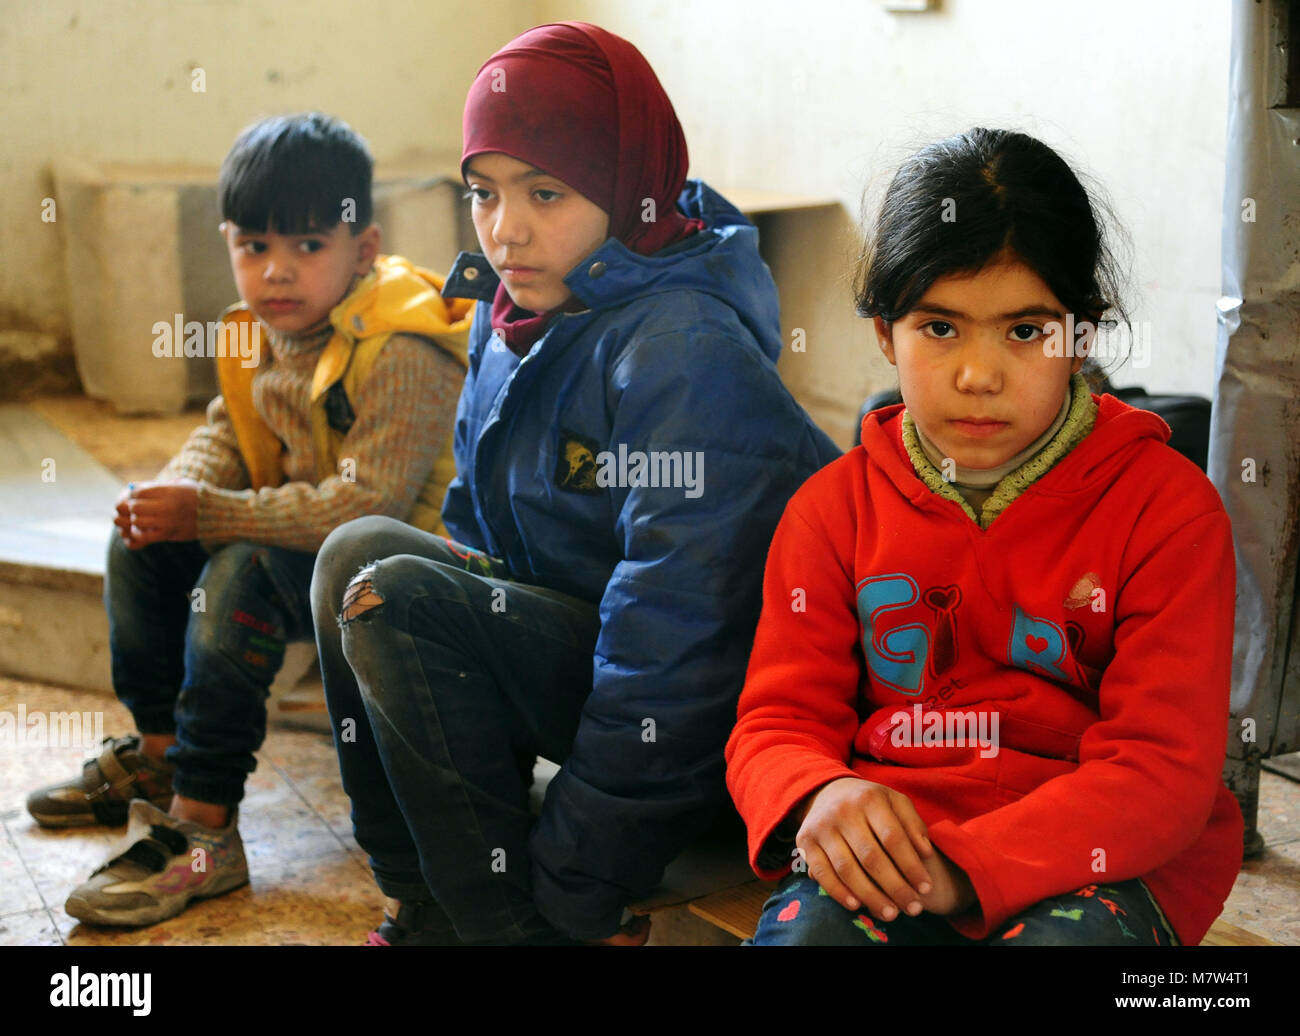 (180313) -- DAMASCUS, March 13, 2018 (Xinhua) -- Evacuated children sit in a temporary shelter in Wafidin area, - Stock Image